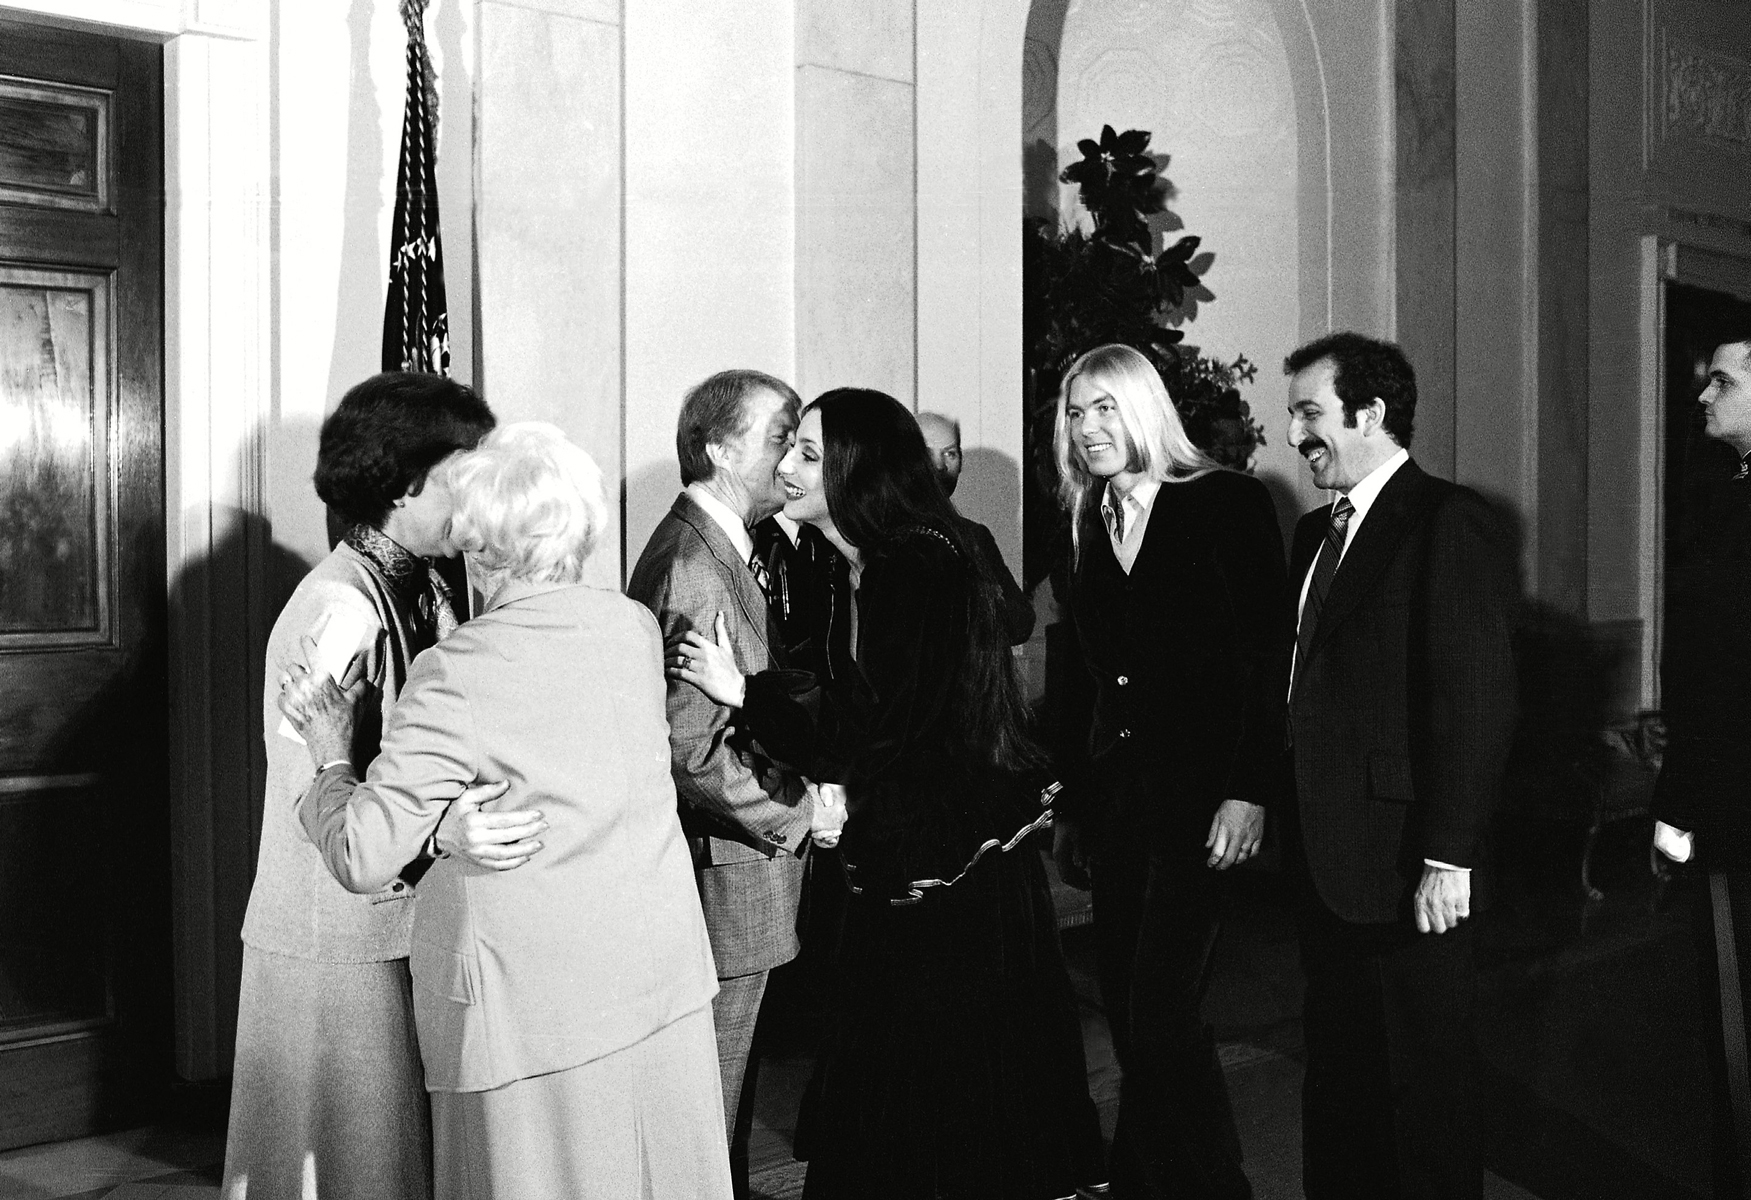 President Jimmy Carter greets singer Cher as her husband Gregg Allman stands by, second from right, during a reception at the White House in Washington in 1977.